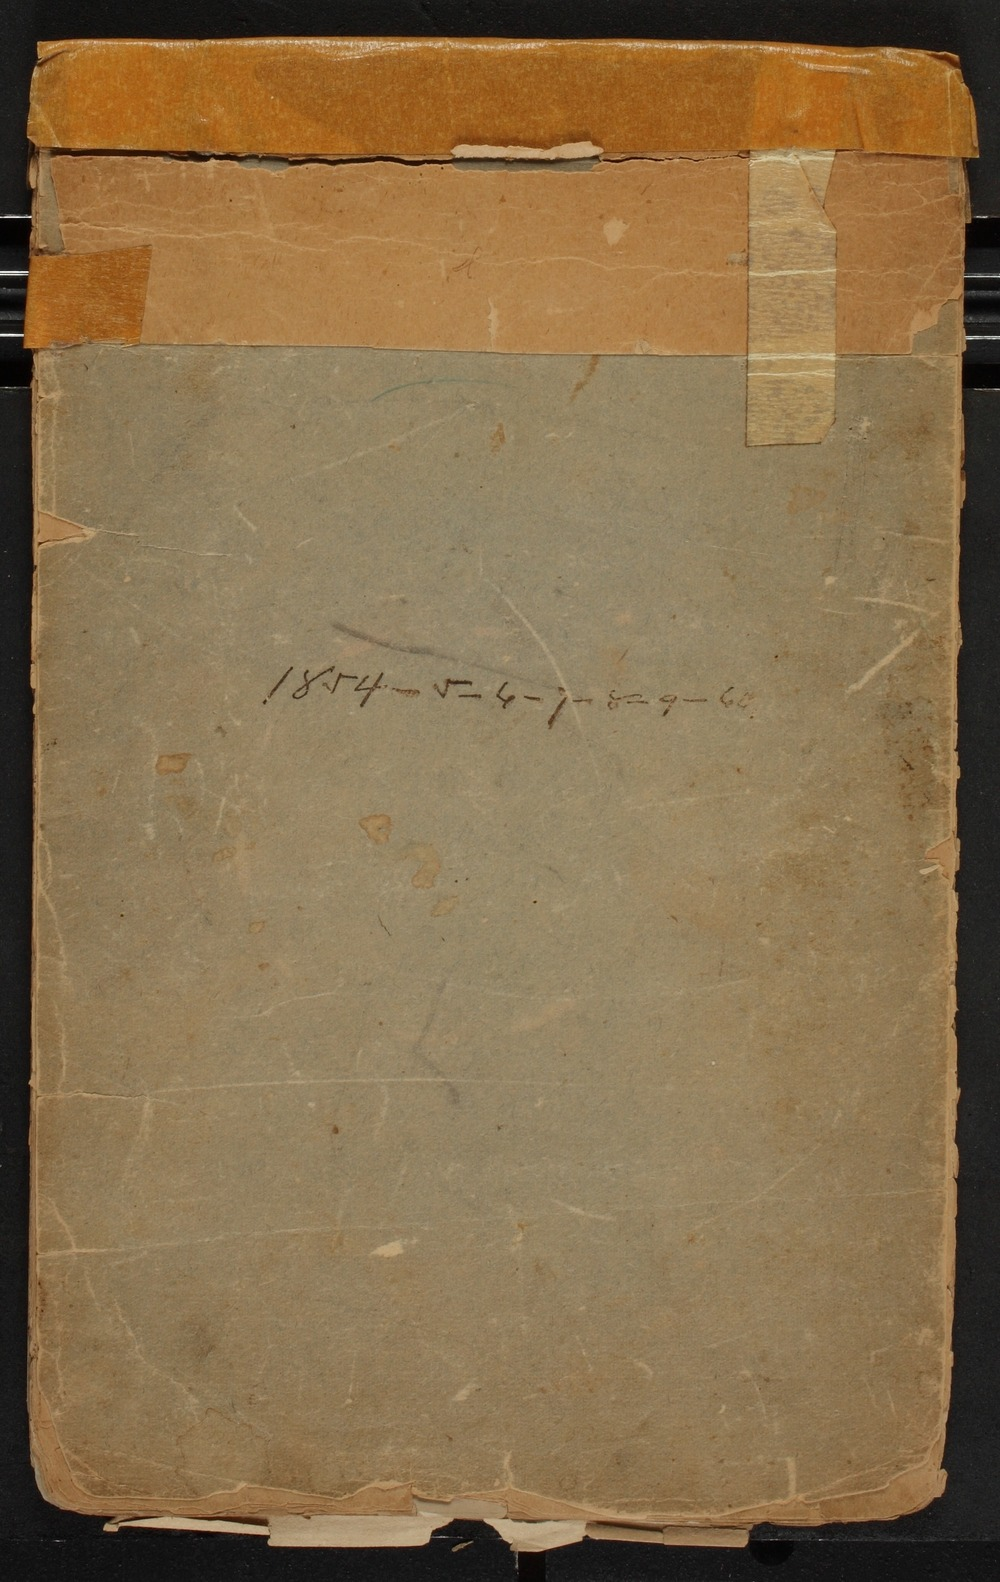 Reuben Smith diaries - Front Cover [1854-1860]